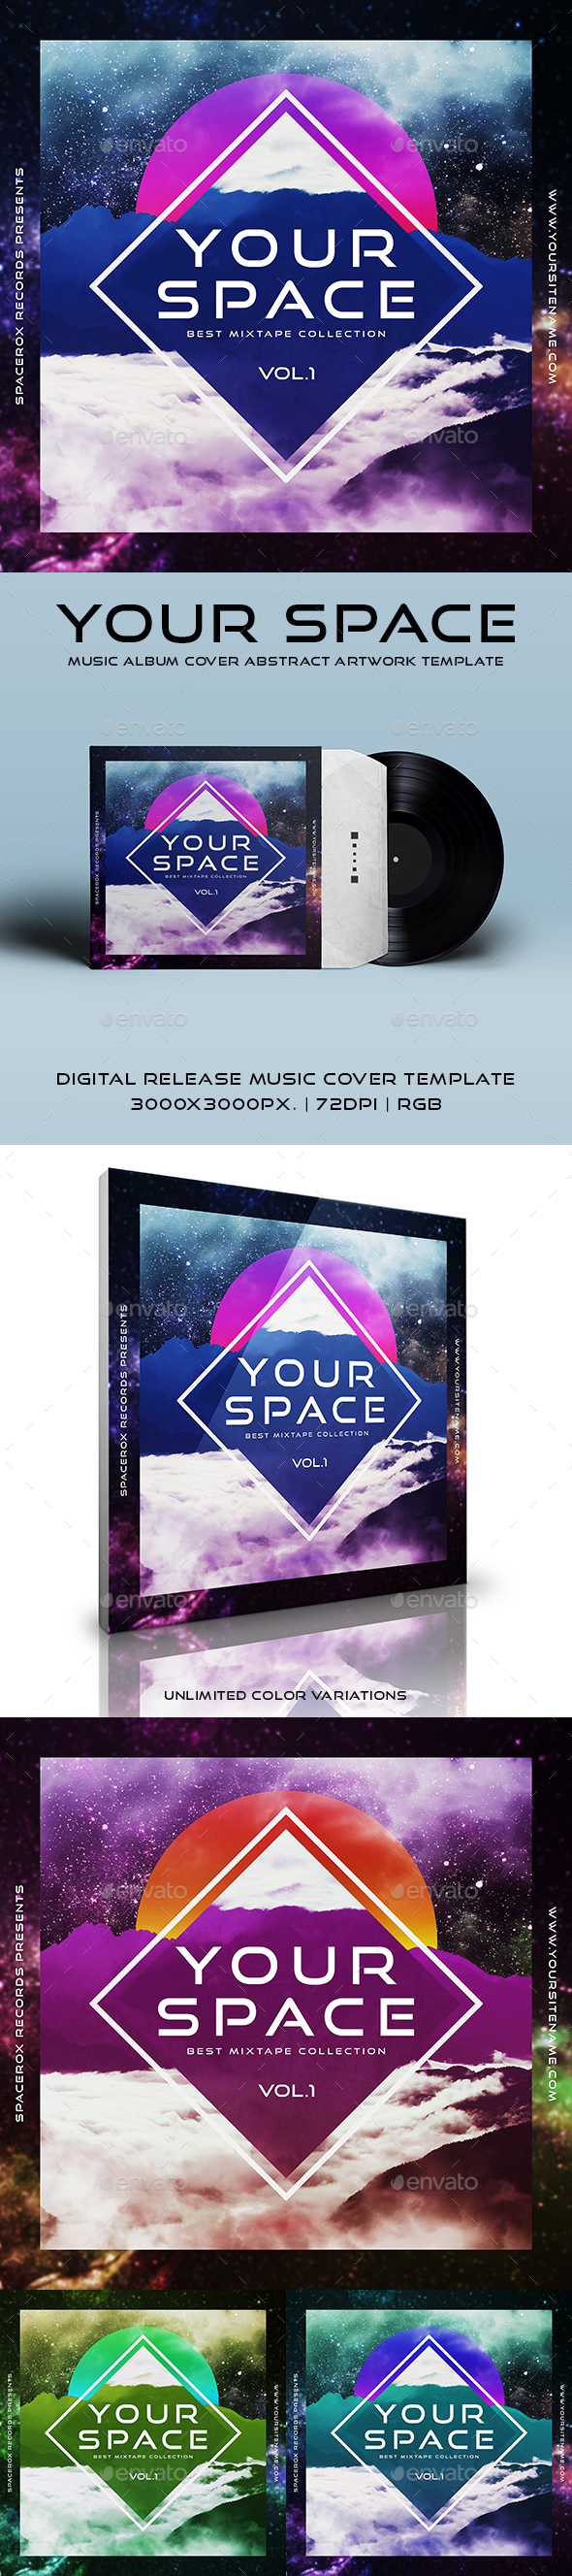 Your Space - Music Album Cover Abstract Artwork Template